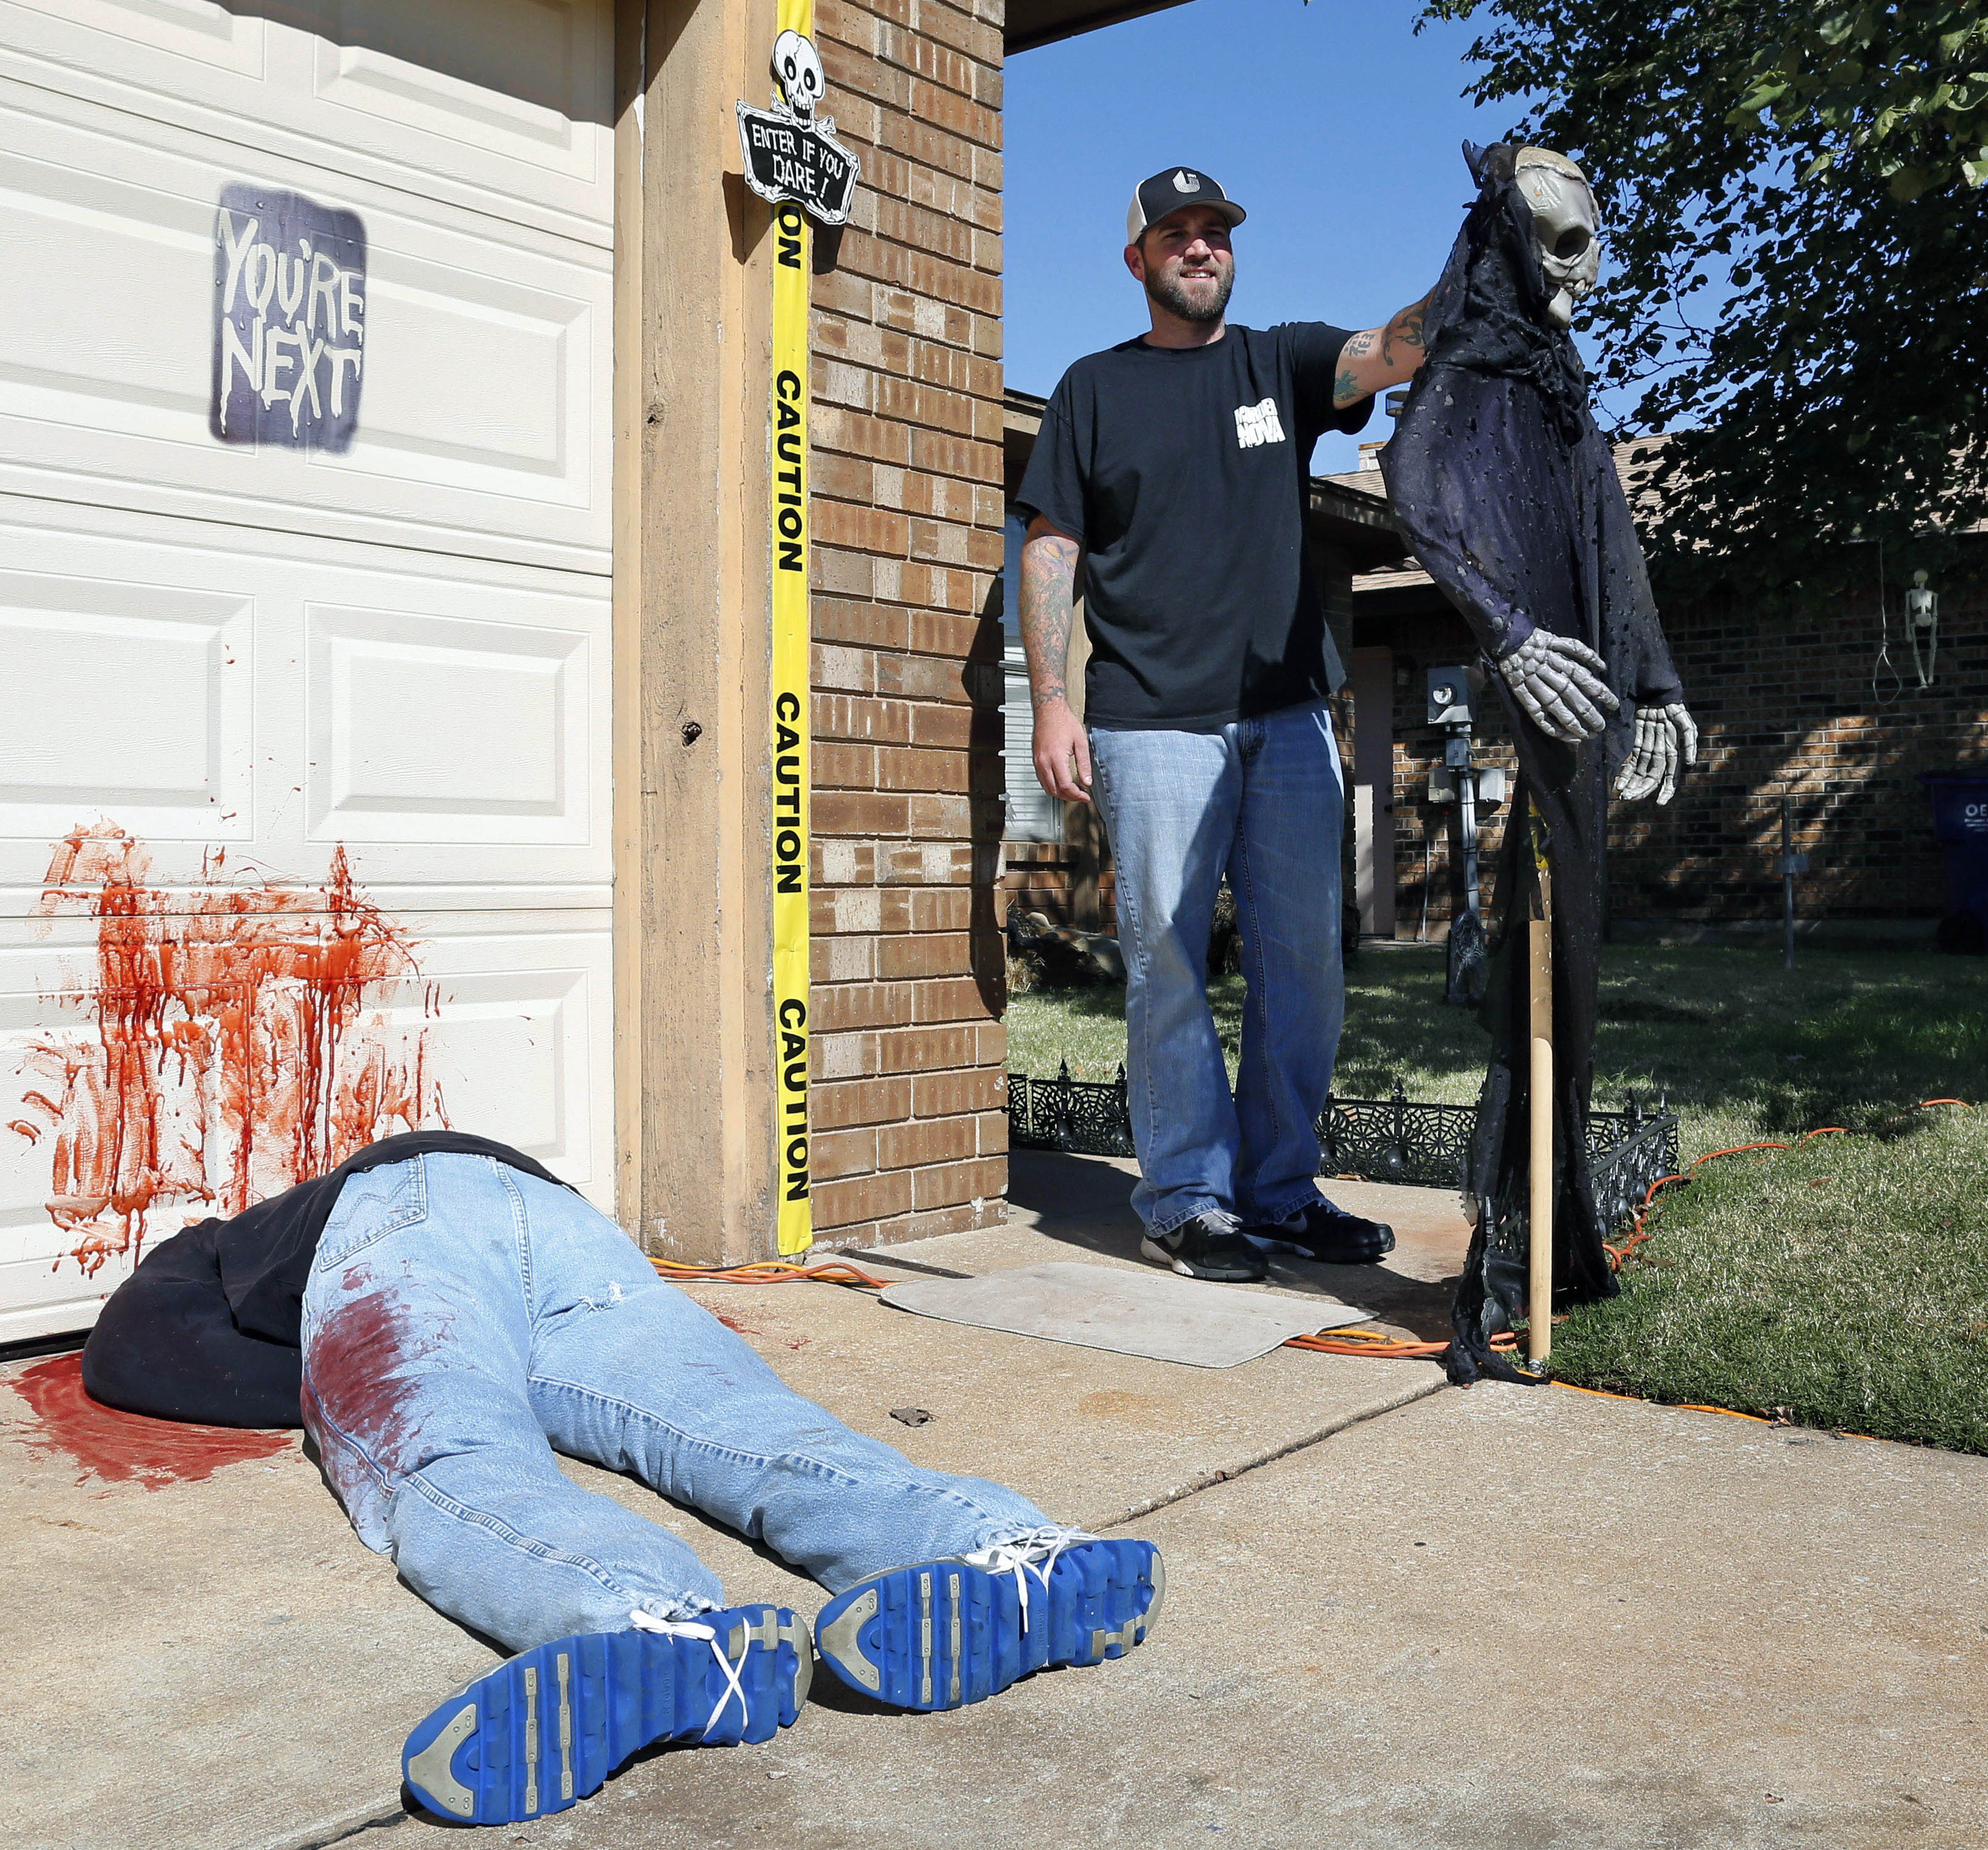 Home S Gory Halloween Display Attracts Attention